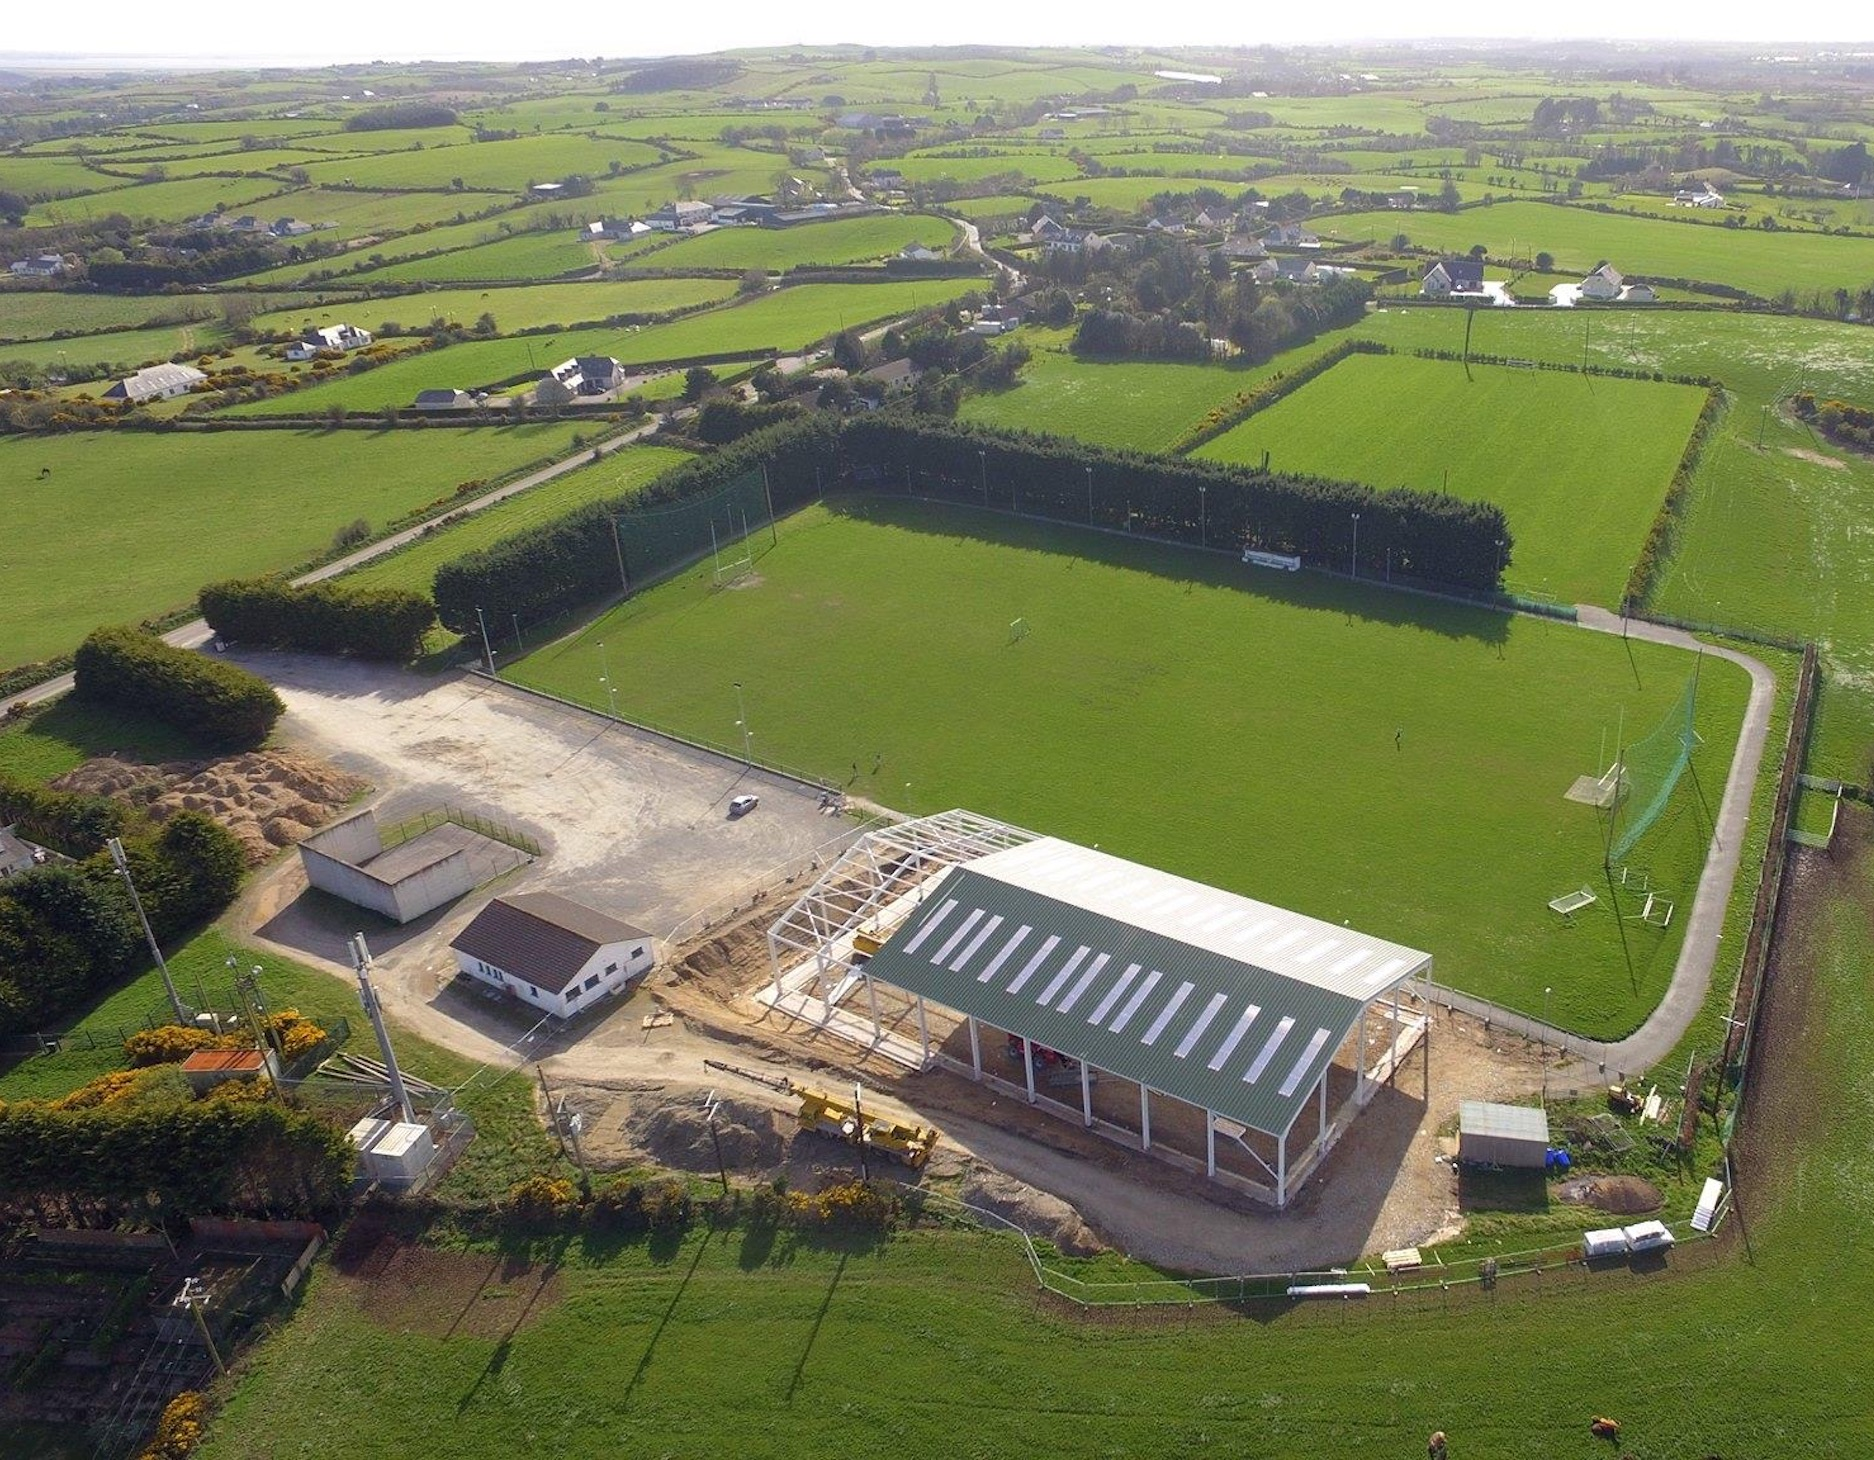 http://blackwater.gaa.ie/wp-content/uploads/2020/01/Pitch-aerial-shot-for-front-page-1.jpg